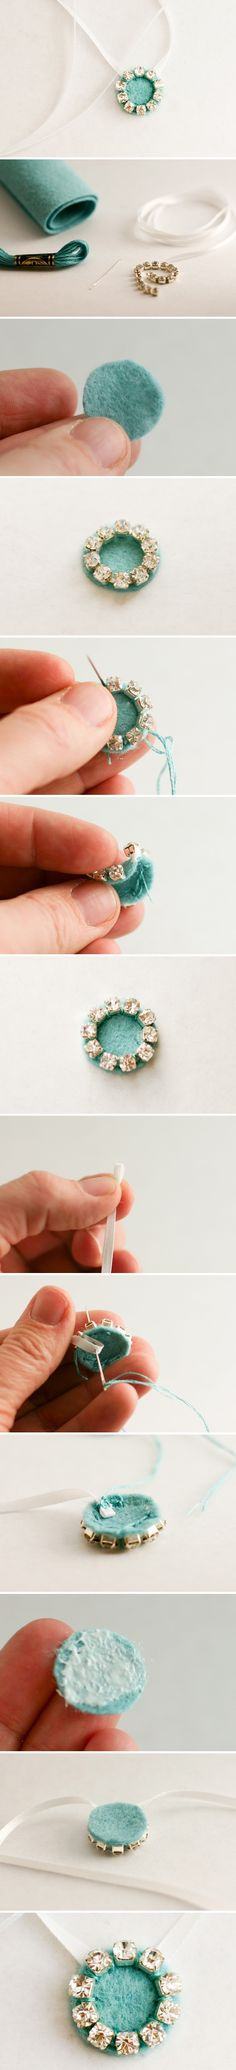 "rhinstone and felt DIY jewelry-would also be a cute ""button"" to embellish outfits or sweaters"